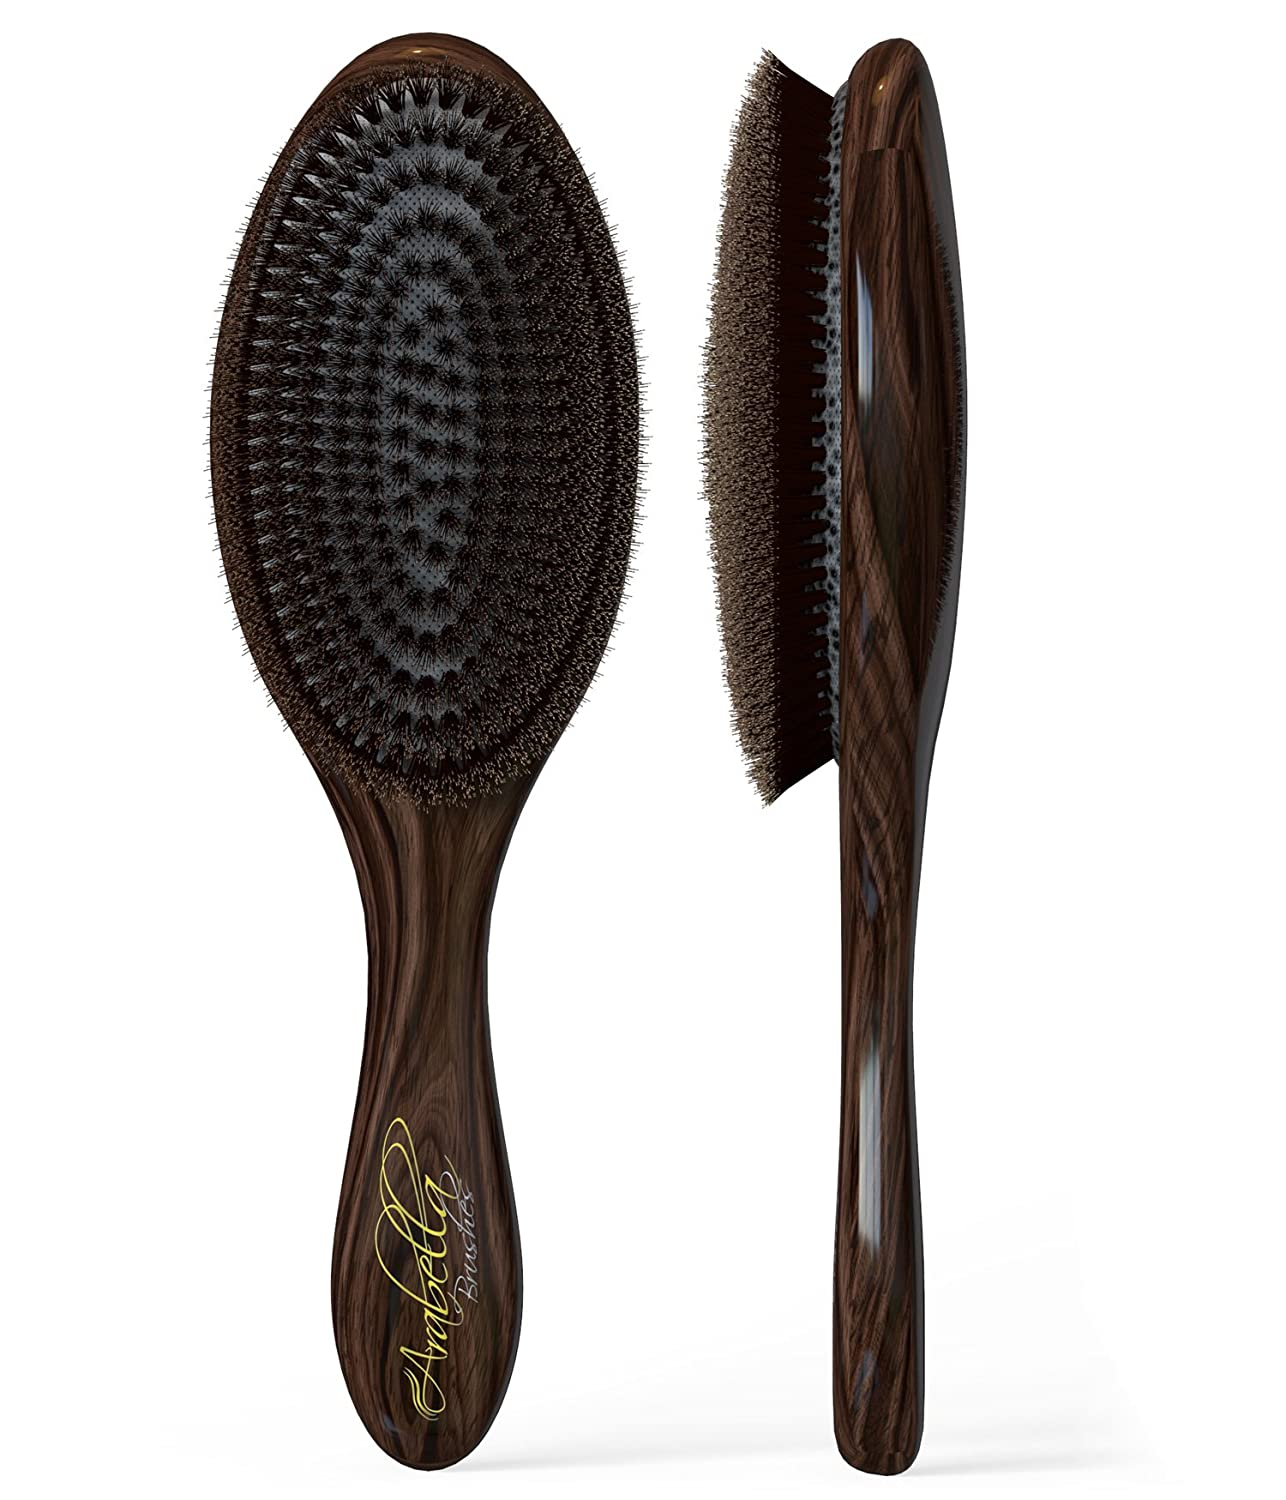 100% Natural Boar Bristle Hair Styling Brush -Classic Looking, Oval Shaped, Best Used for Short or Long Hair, Beards, Fades and Pompadors, - Soft Bristles-professional Salon Quality- For Men and Women- Light Weight- Canadian Design. Buy Now, Lifetime Guara